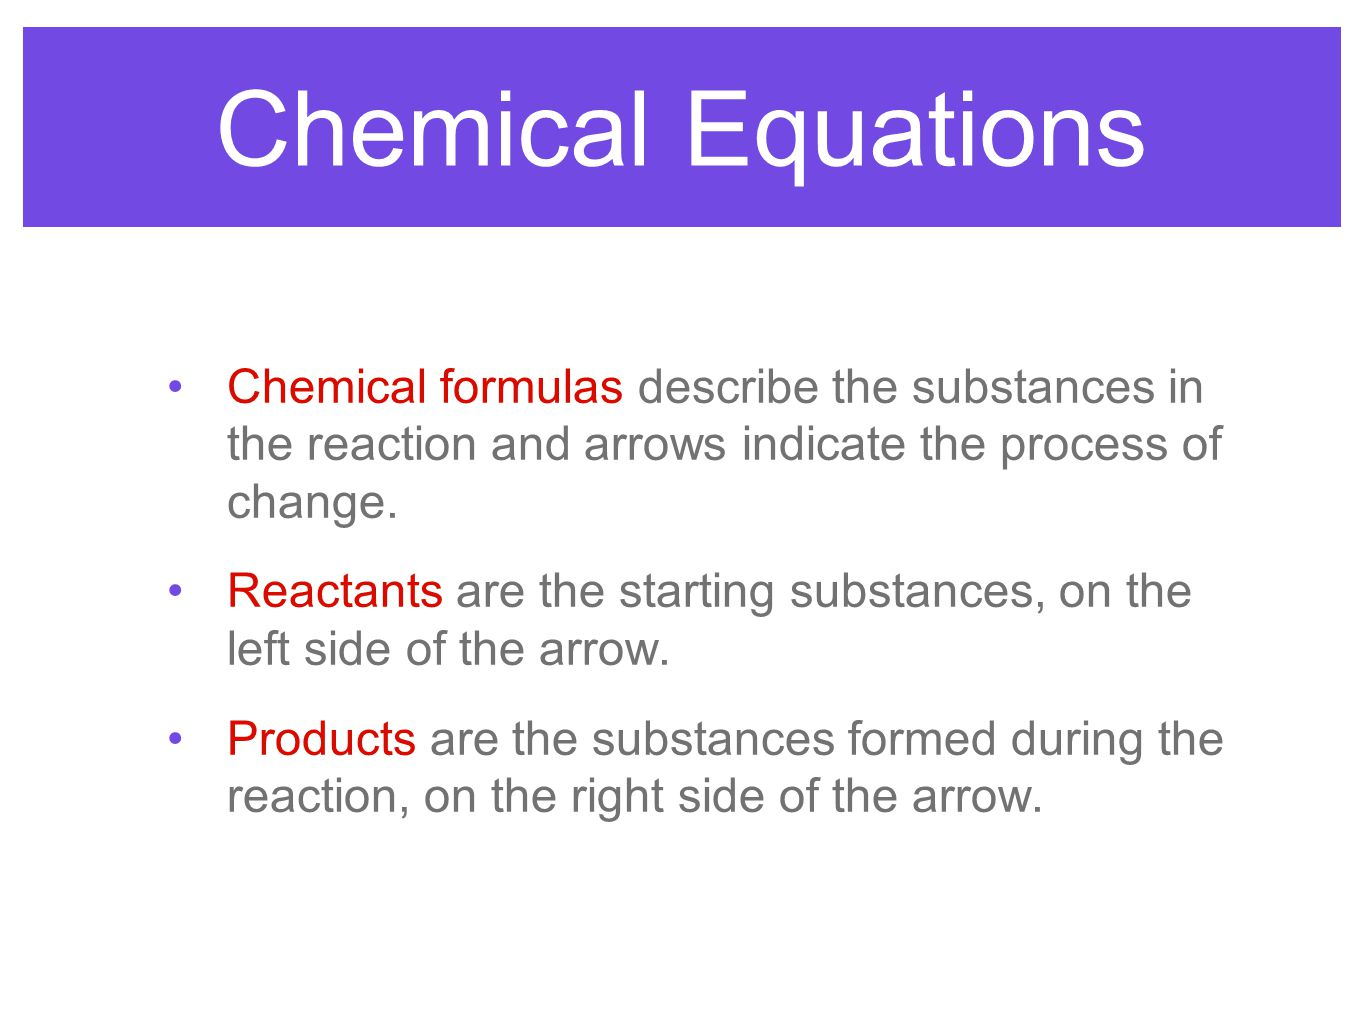 Chemical Equations Chemical formulas describe the substances in the reaction and arrows indicate the process of change.